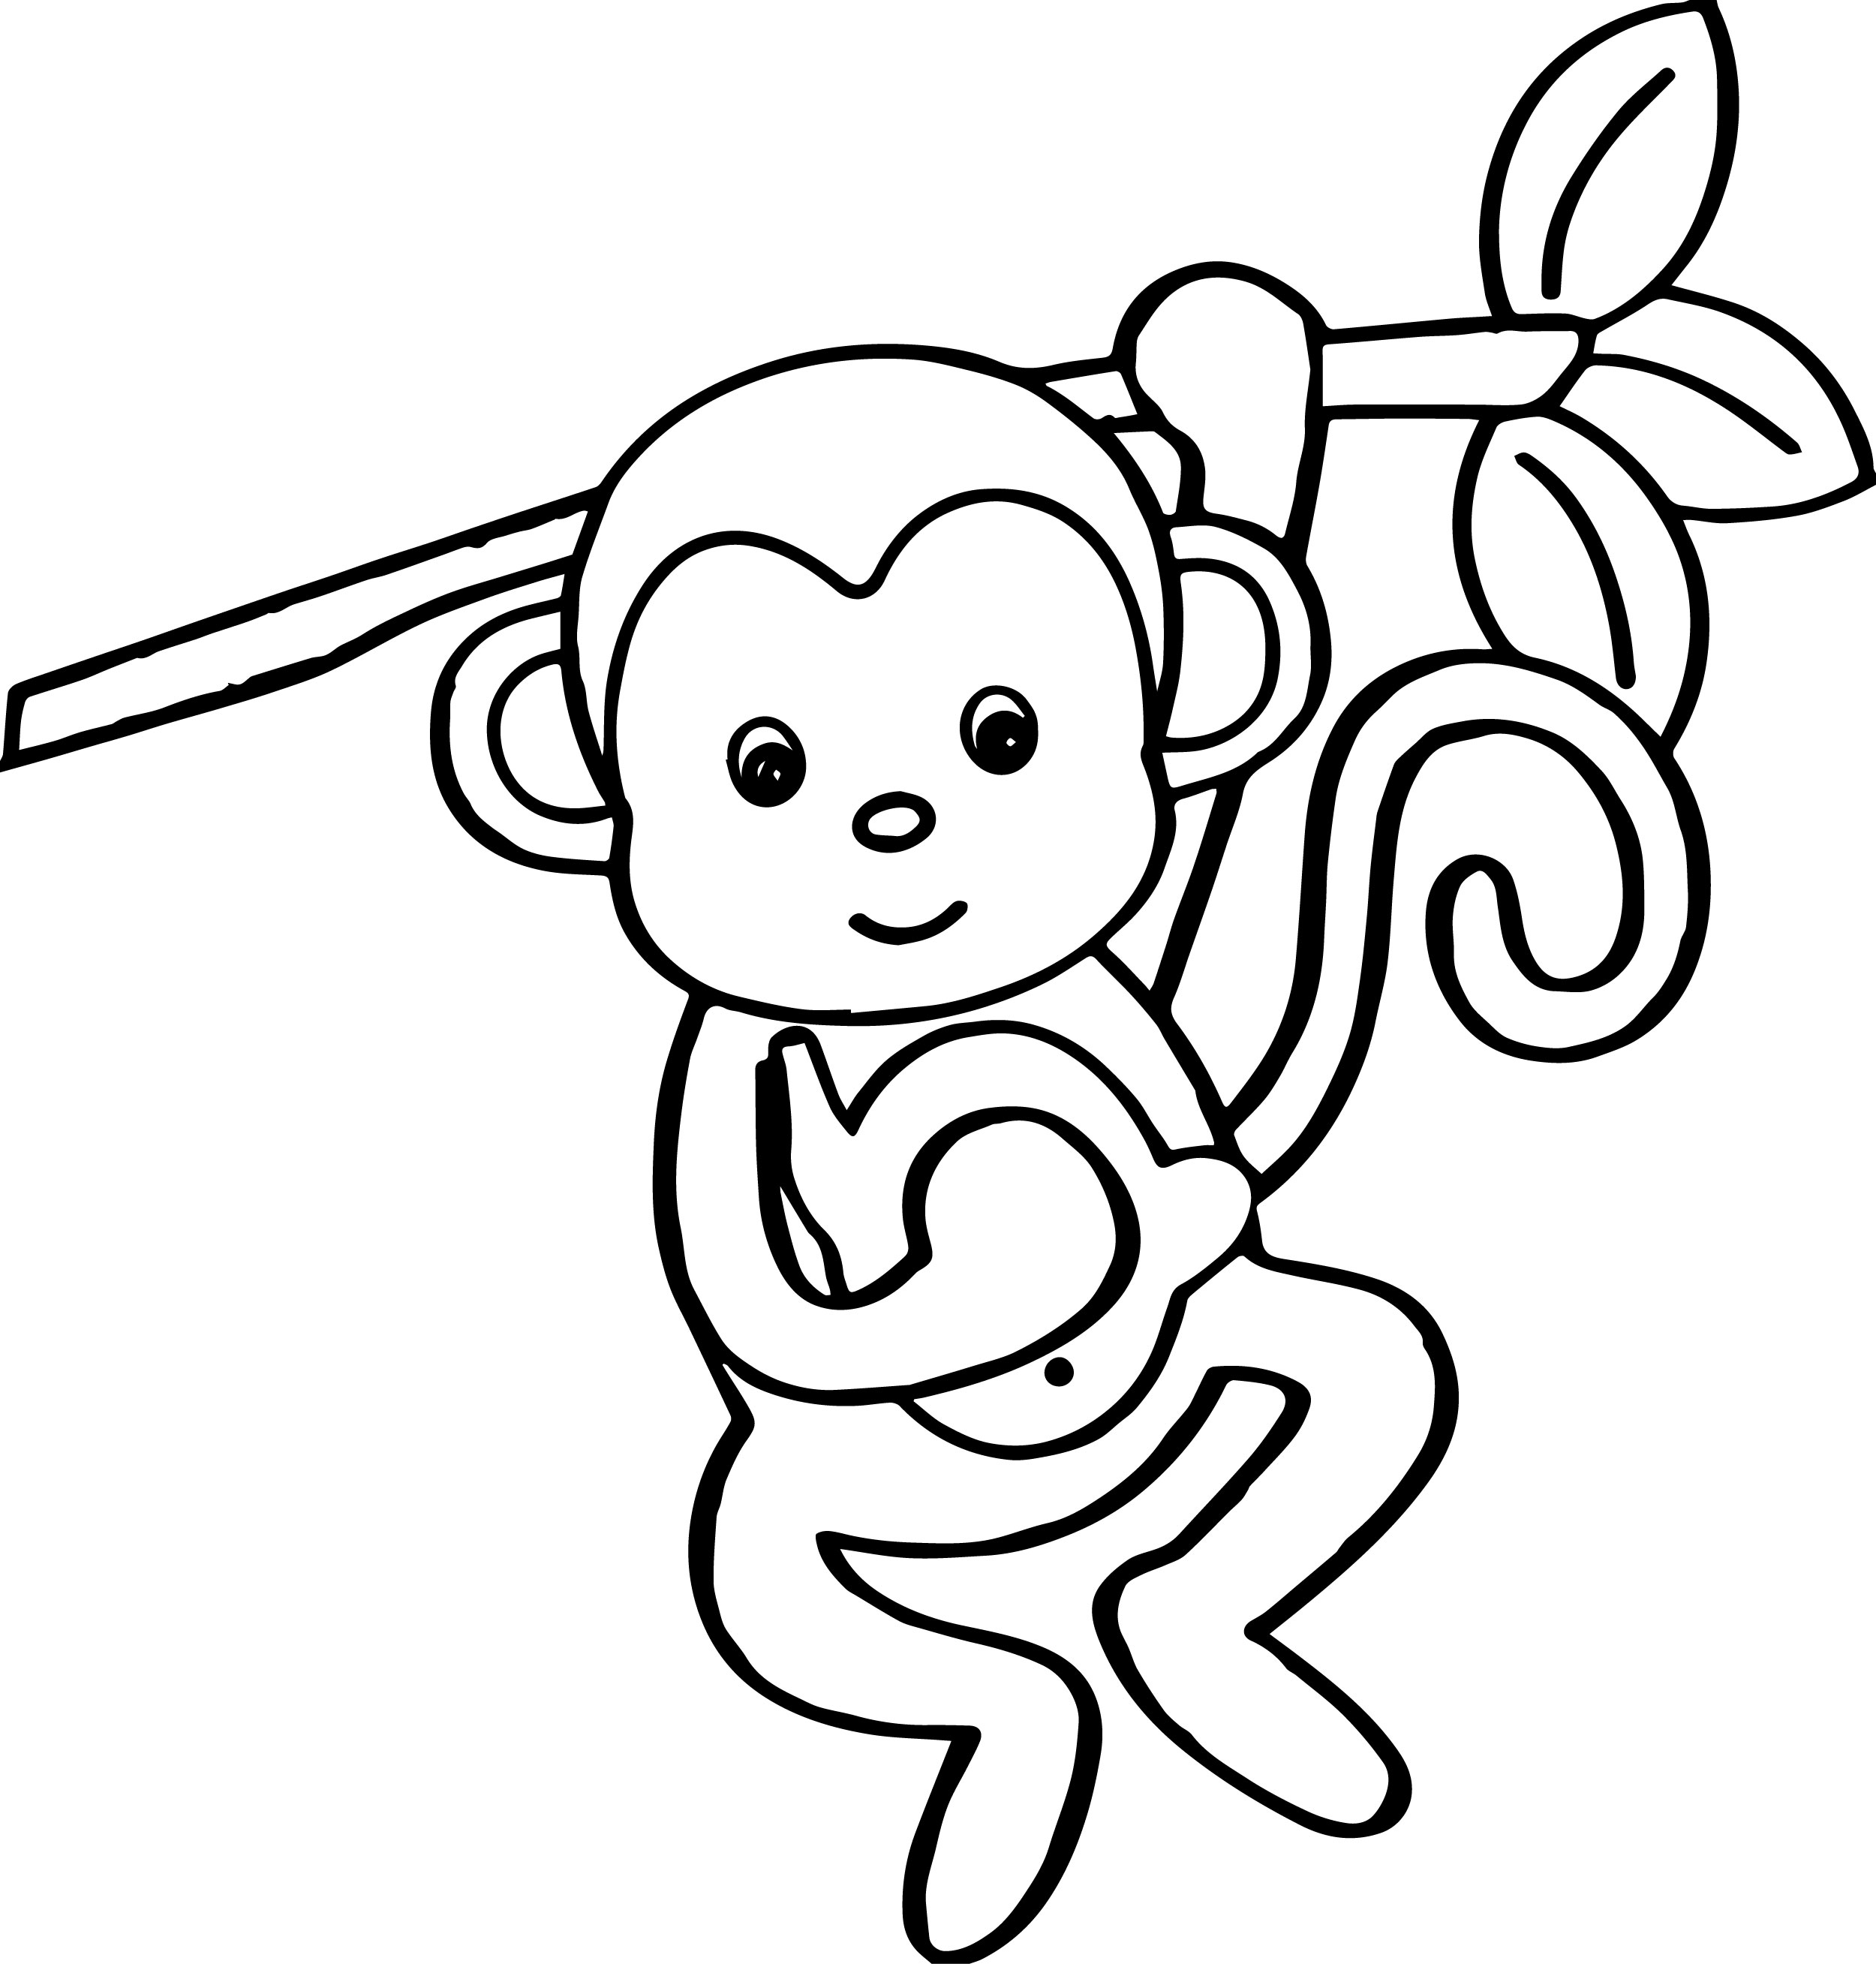 cartoon animals kids monkey coloring page - Coloring Pages Cartoon Animals